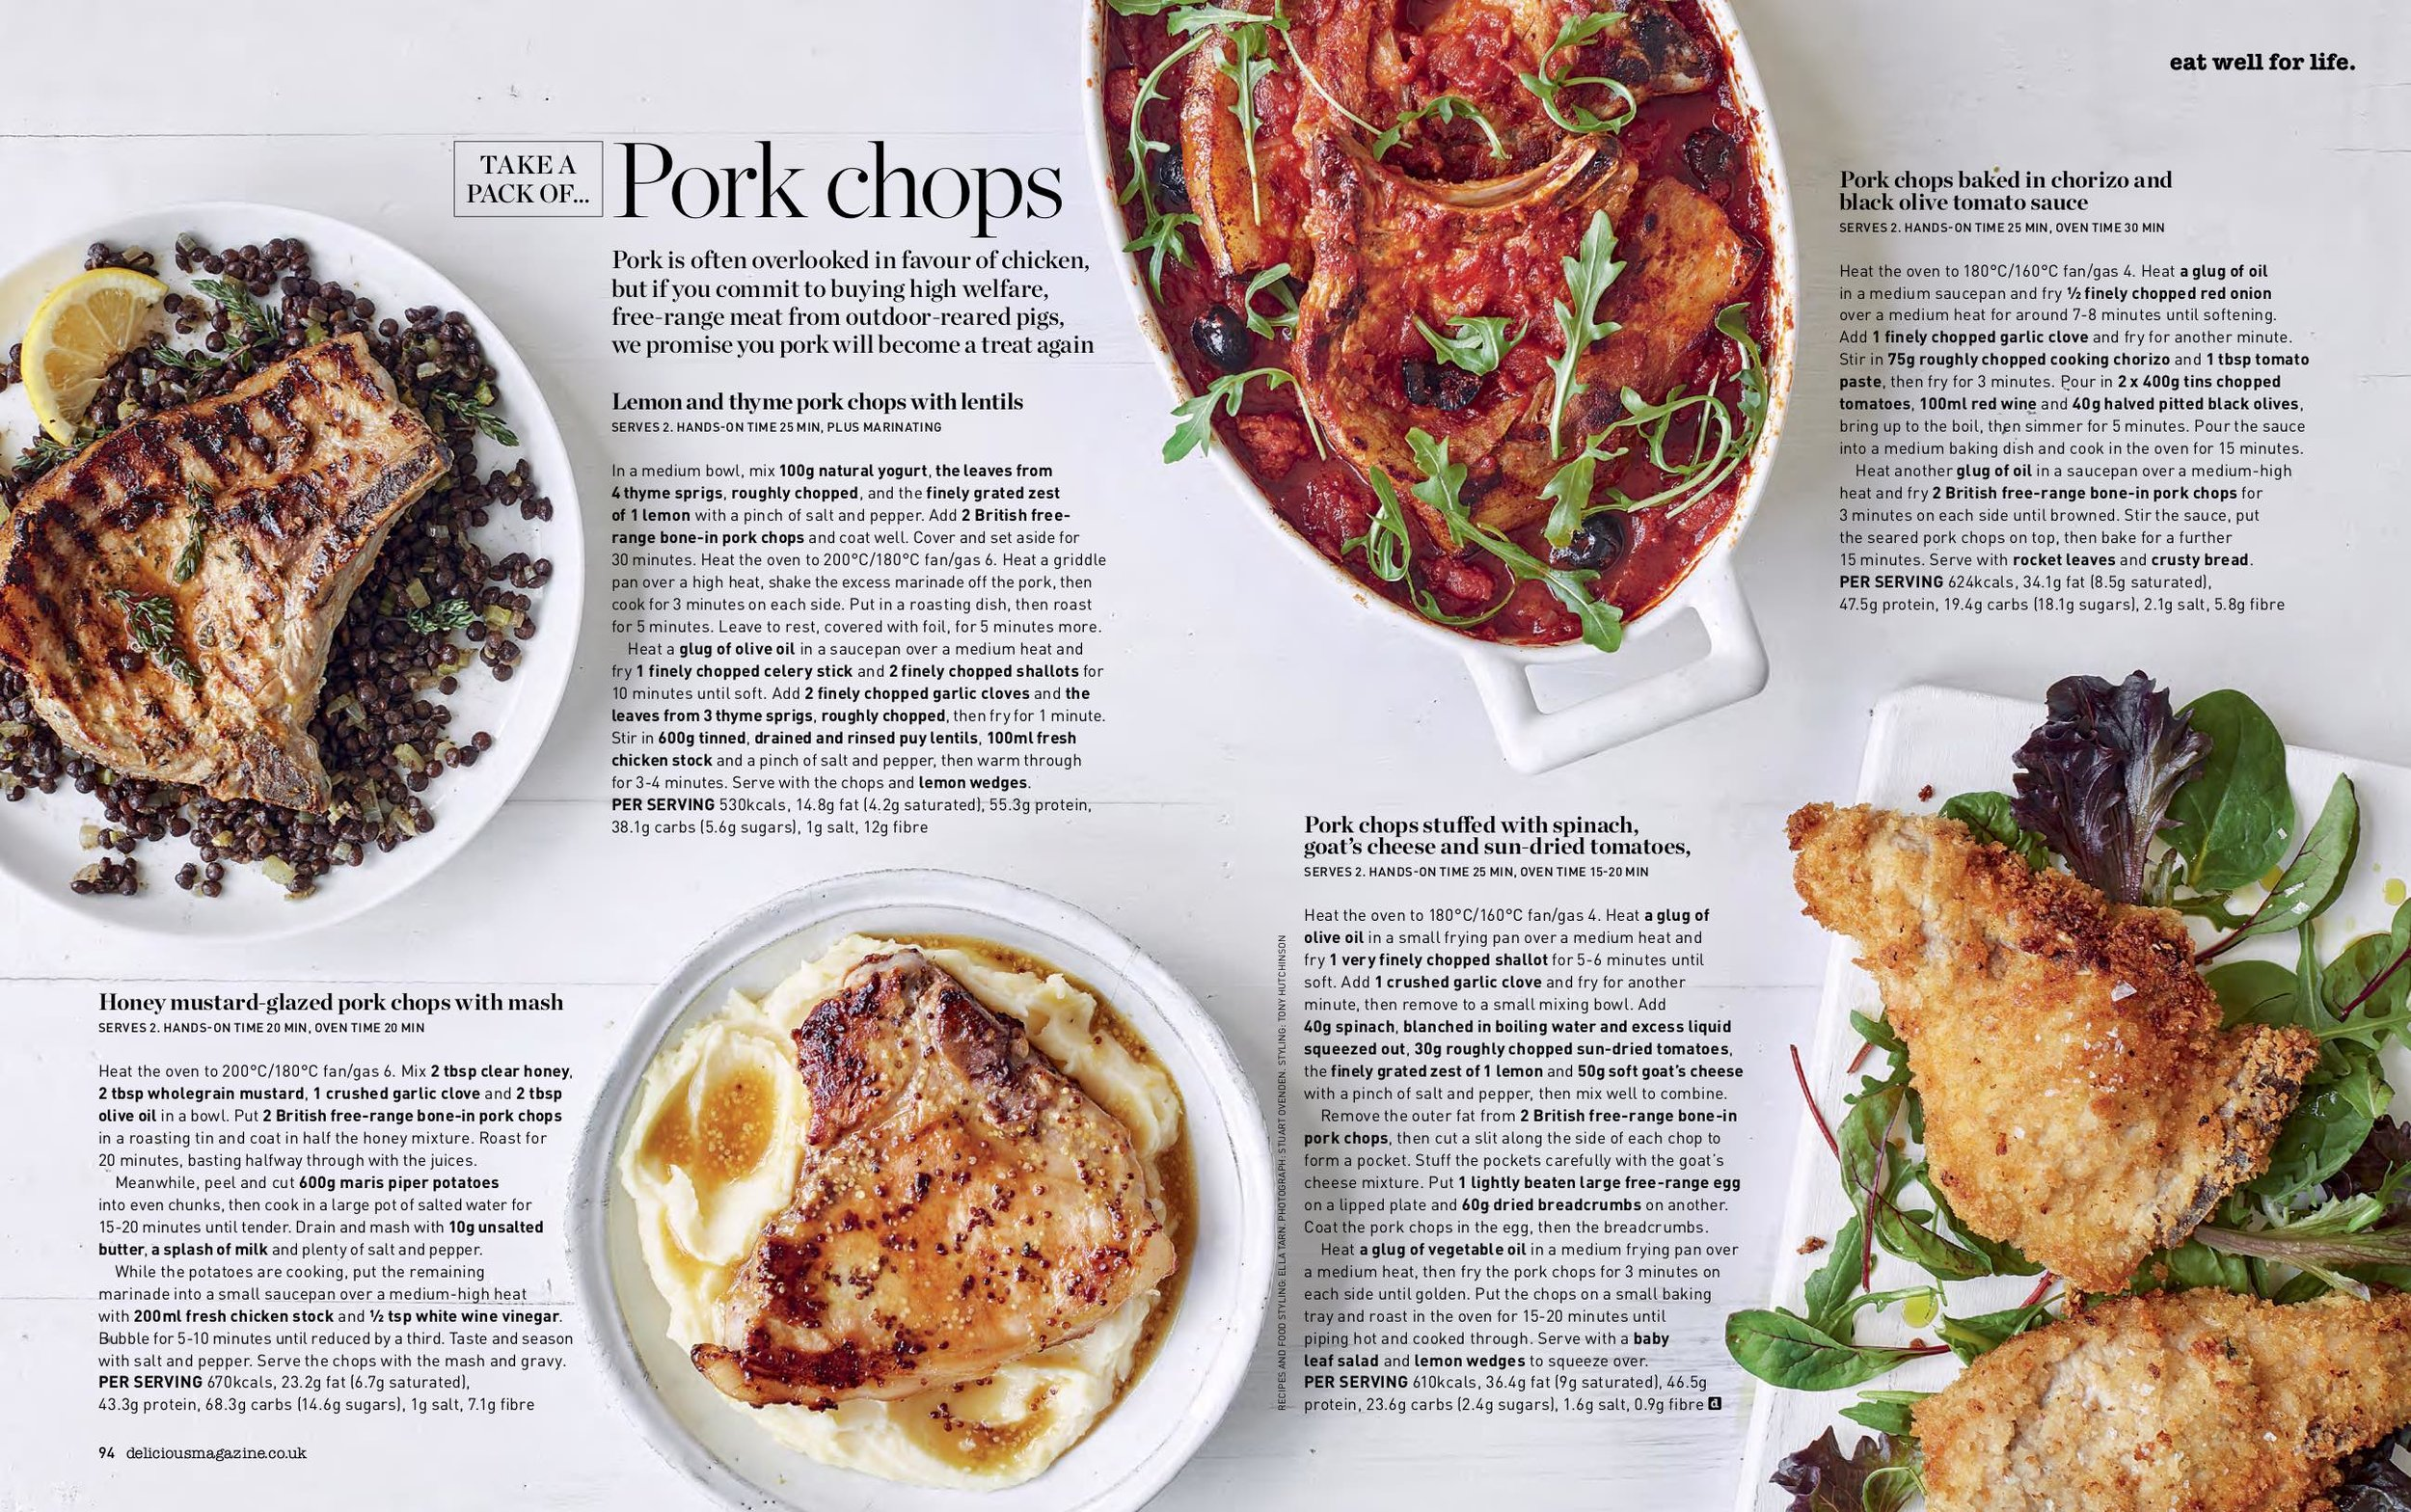 Feature written and food styled for Delicious Magazine